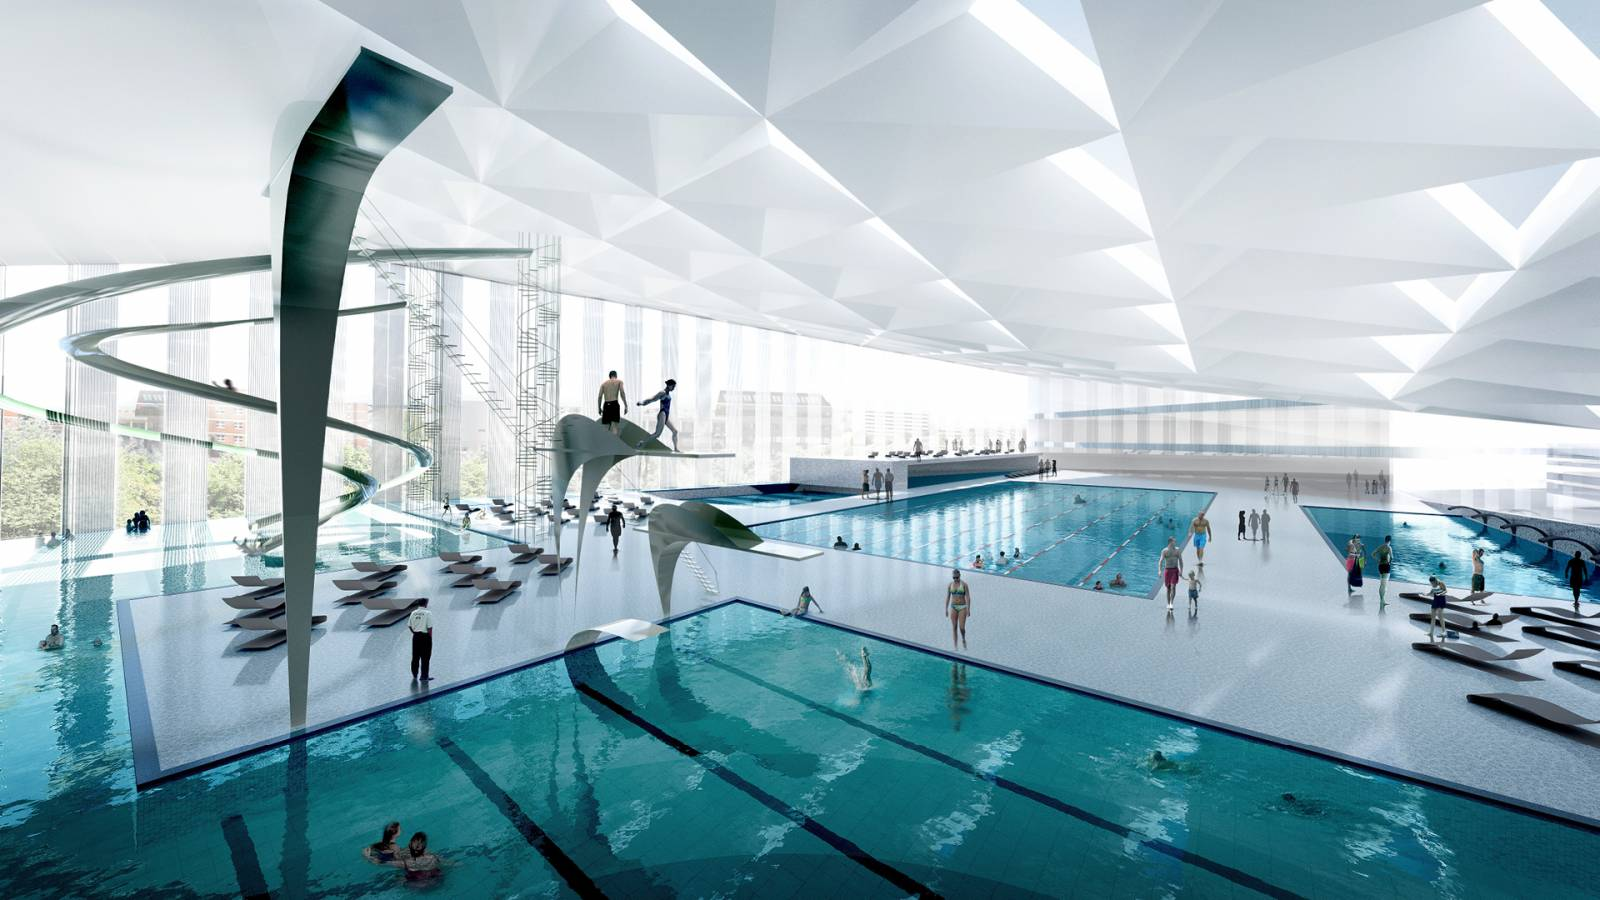 SWIMMING POOL - Økern Centre - SPOL Architects